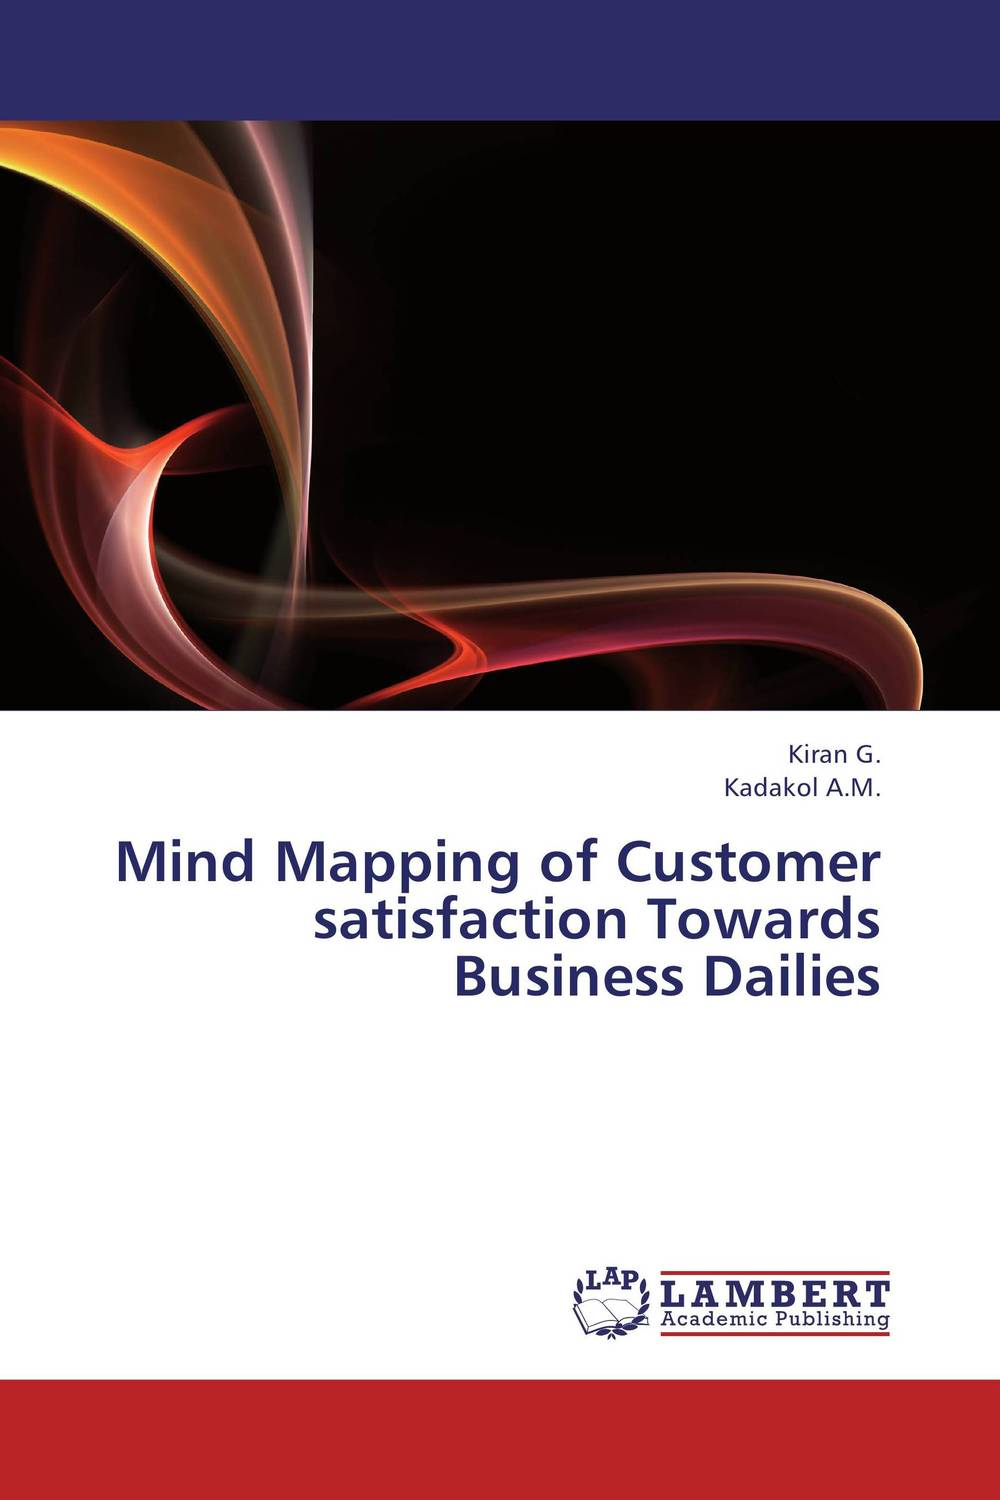 Mind Mapping of Customer satisfaction Towards Business Dailies